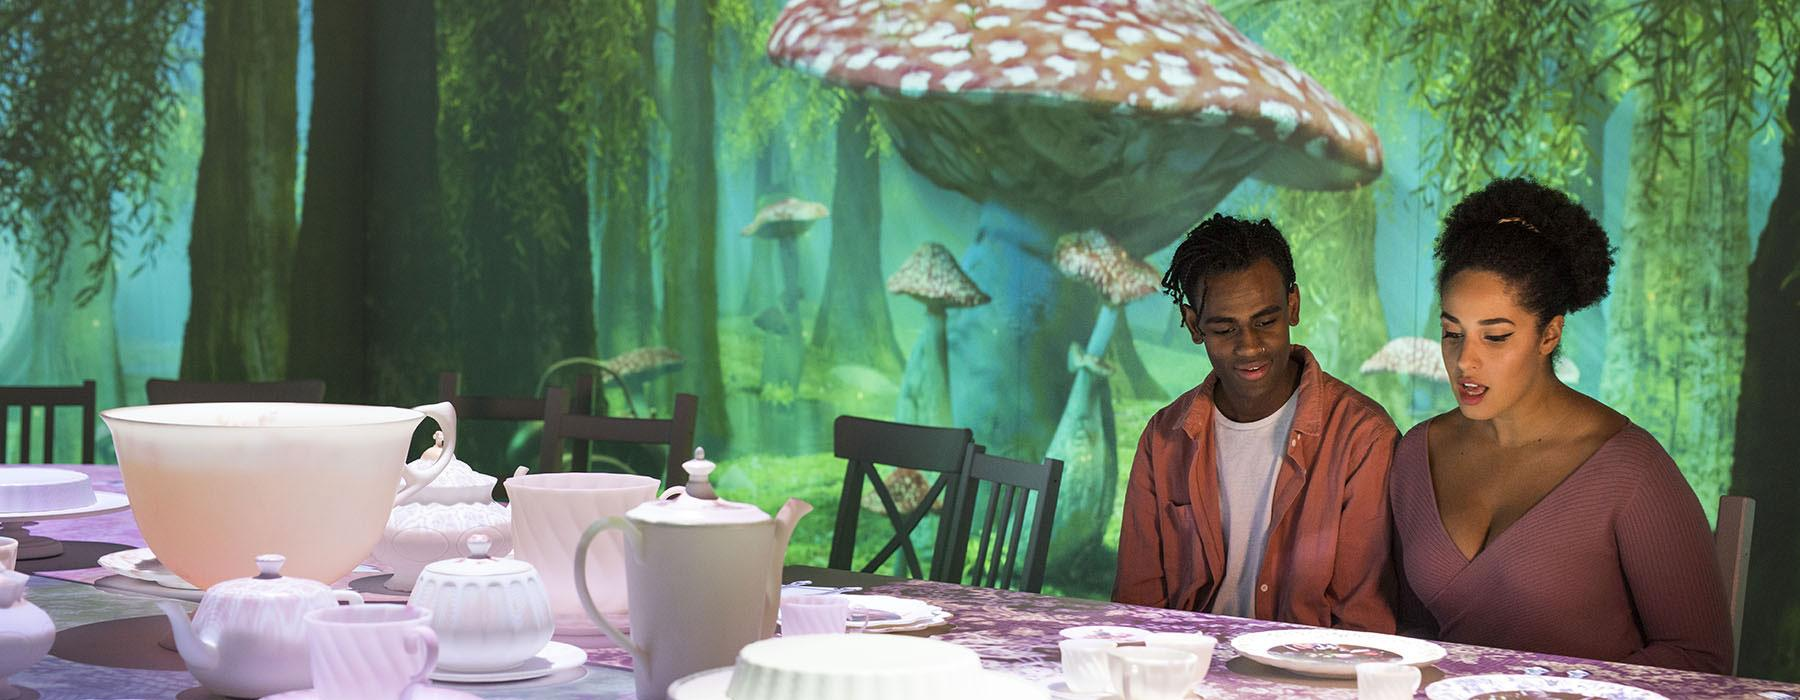 Two people take part in a Mad Hatter's Tea Party